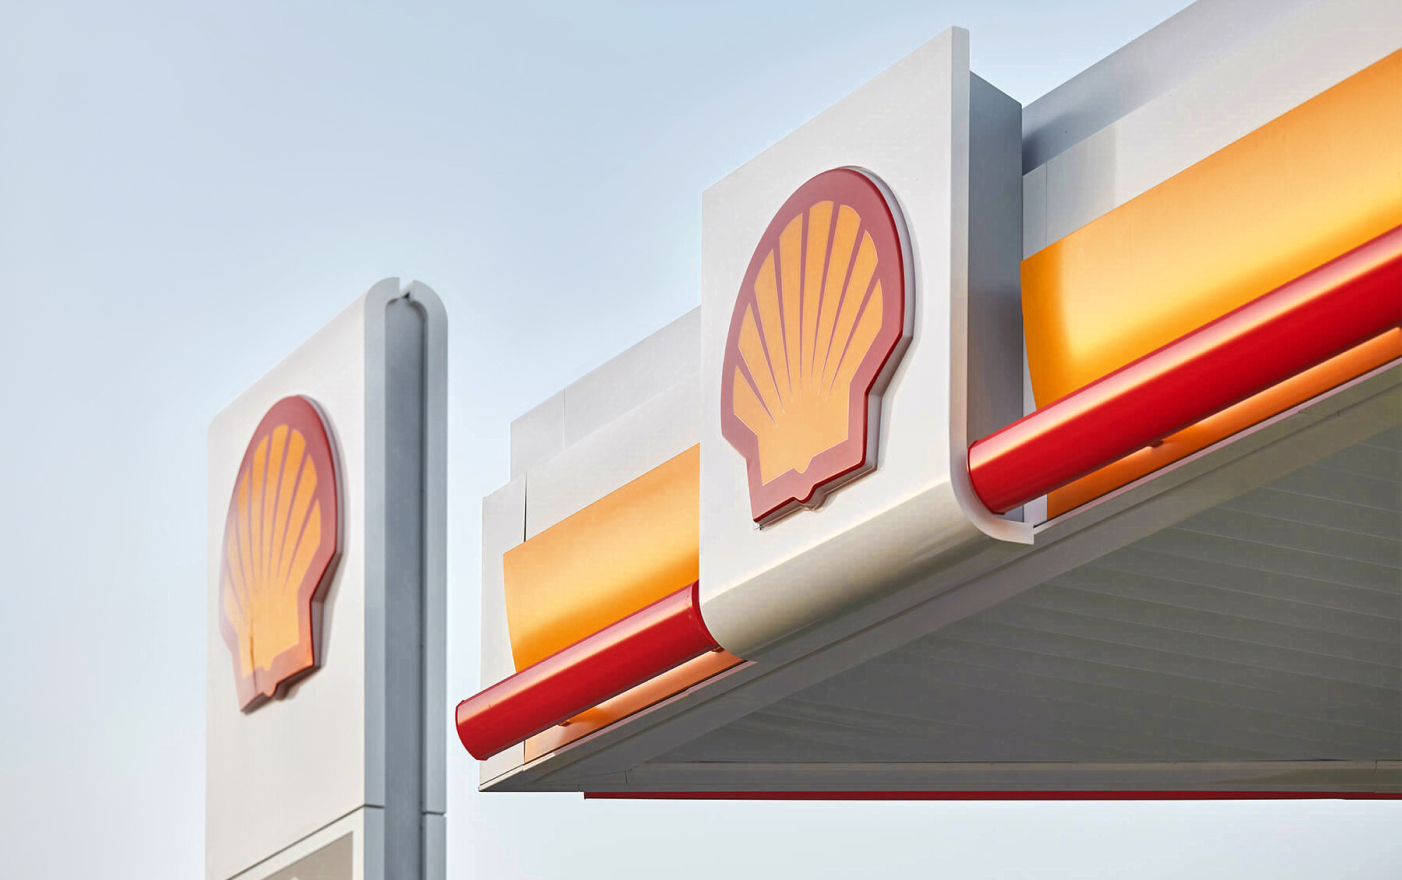 Shell logo at Shell filling station